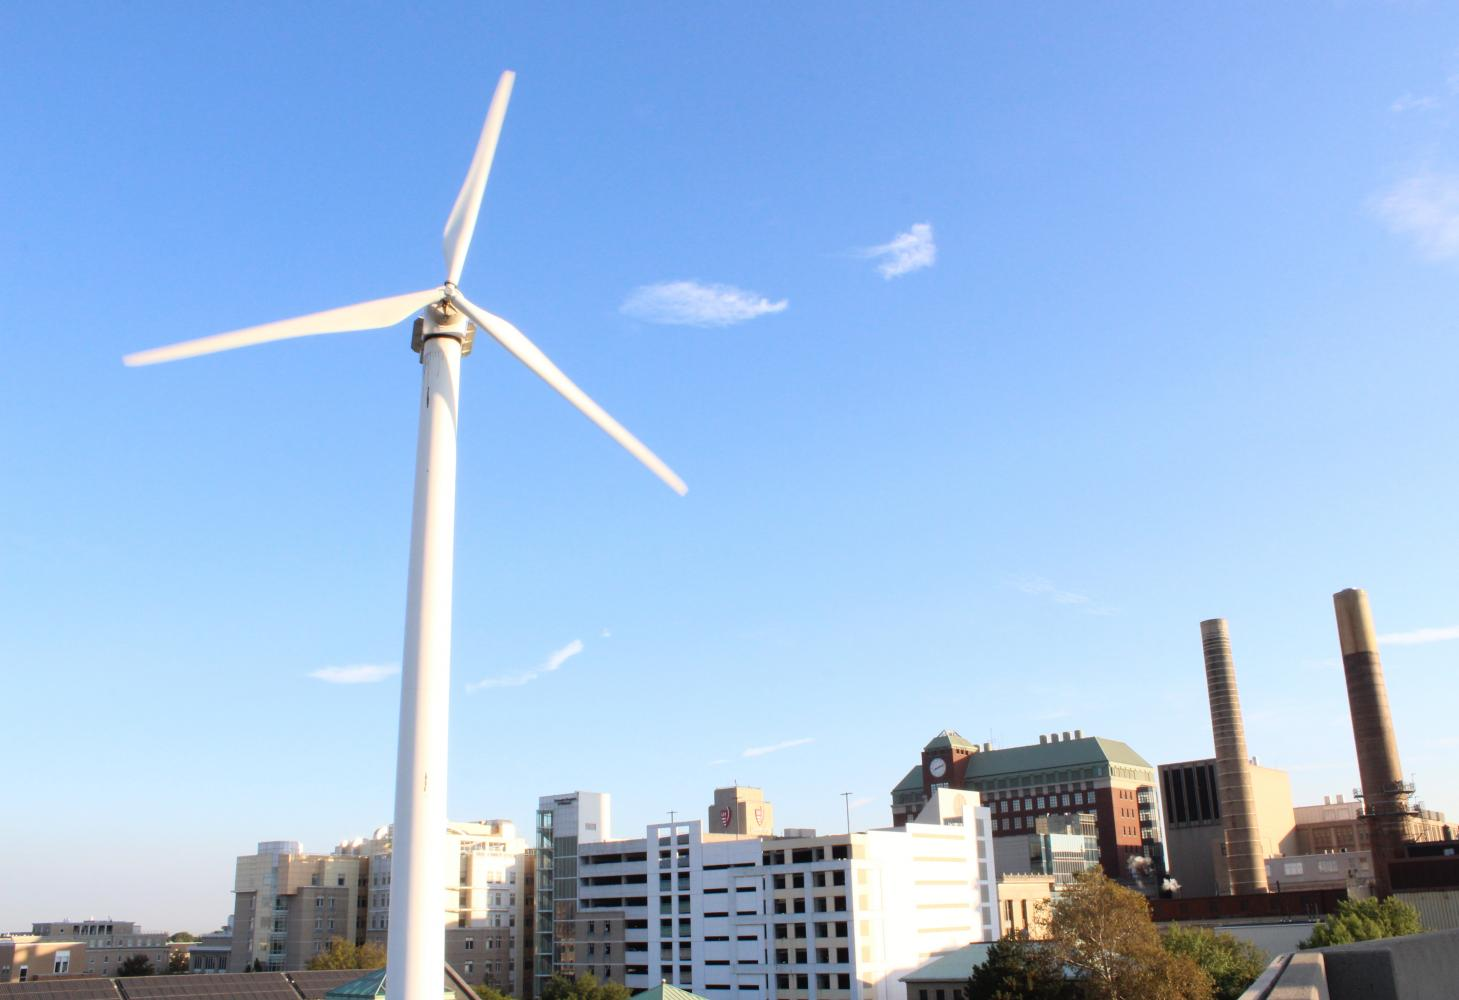 Case Western Reserve University's famous wind turbine helps power the Veale Center. The turbine was one of the first steps of many toward a more sustainable campus.